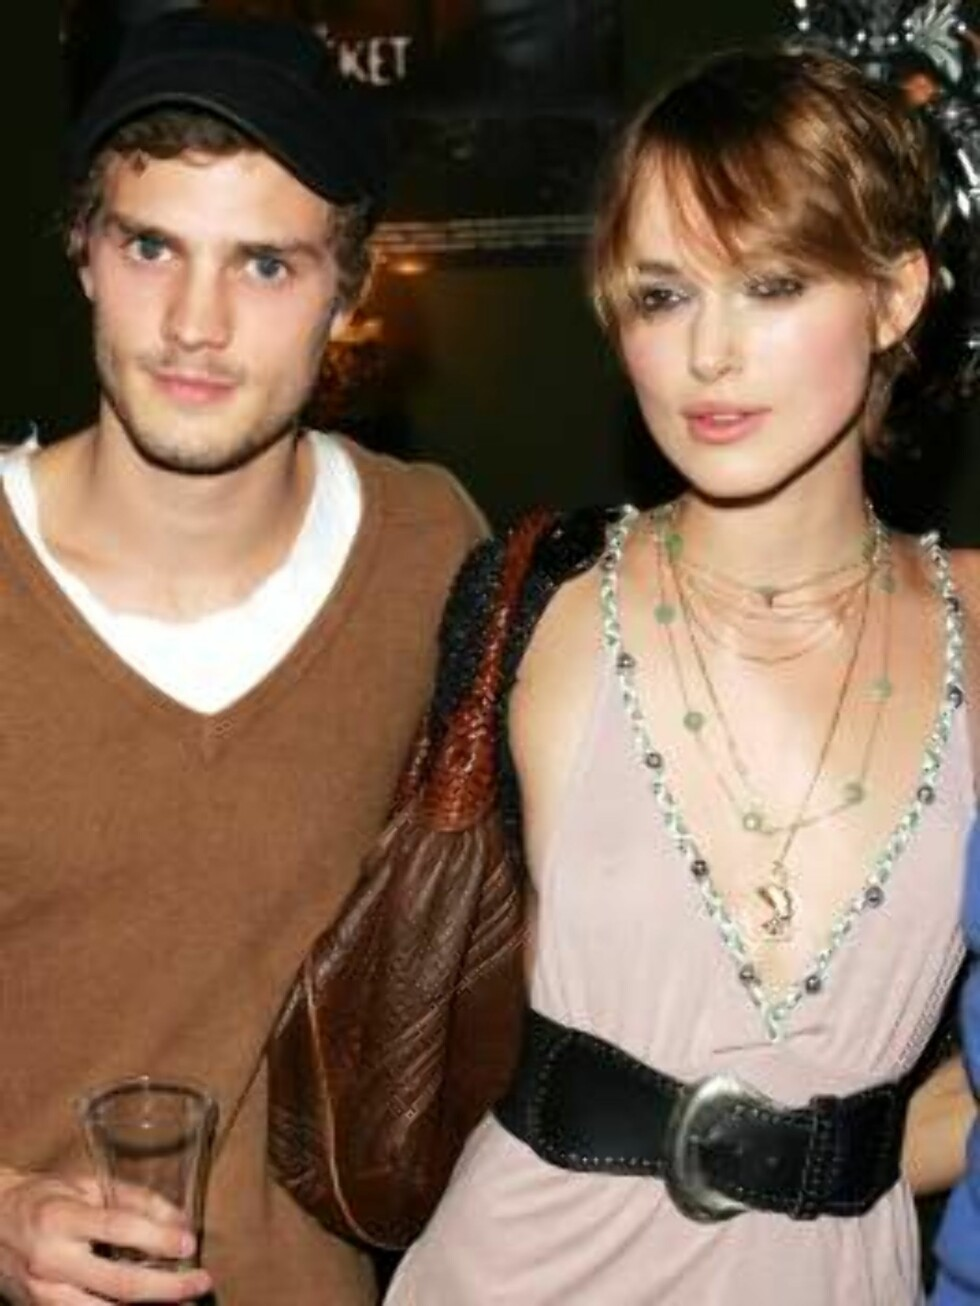 """LONDON - MAY 9:  (UK TABLOID NEWSPAPERS OUT) Actress Keira Knightley and her boyfriend Jamie attend a screening of """"The Jacket"""" at the Rex Cinema and bar on May 9, 2005 in London, England. (Photo by Dave Hogan/Getty Images)  / ALL OVER PRESS52777438DHN062 Foto: All Over Press"""